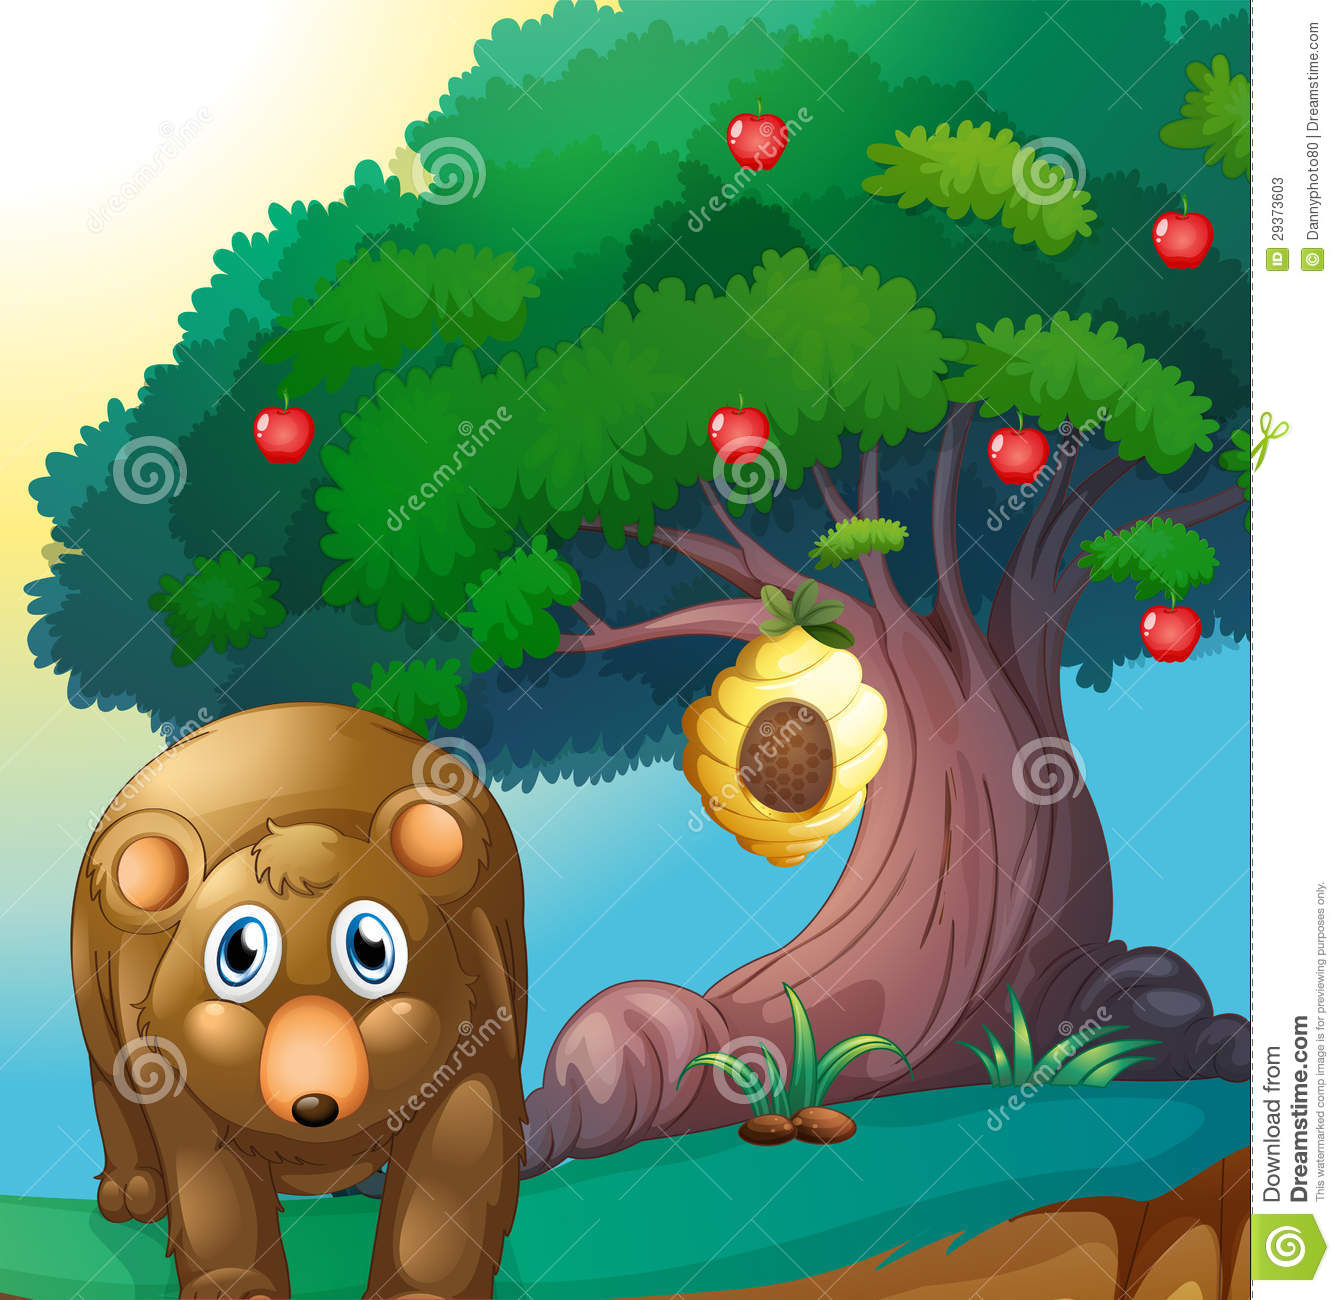 Beehive from tree clipart graphic free library Beehive on a tree clipart - ClipartFox graphic free library